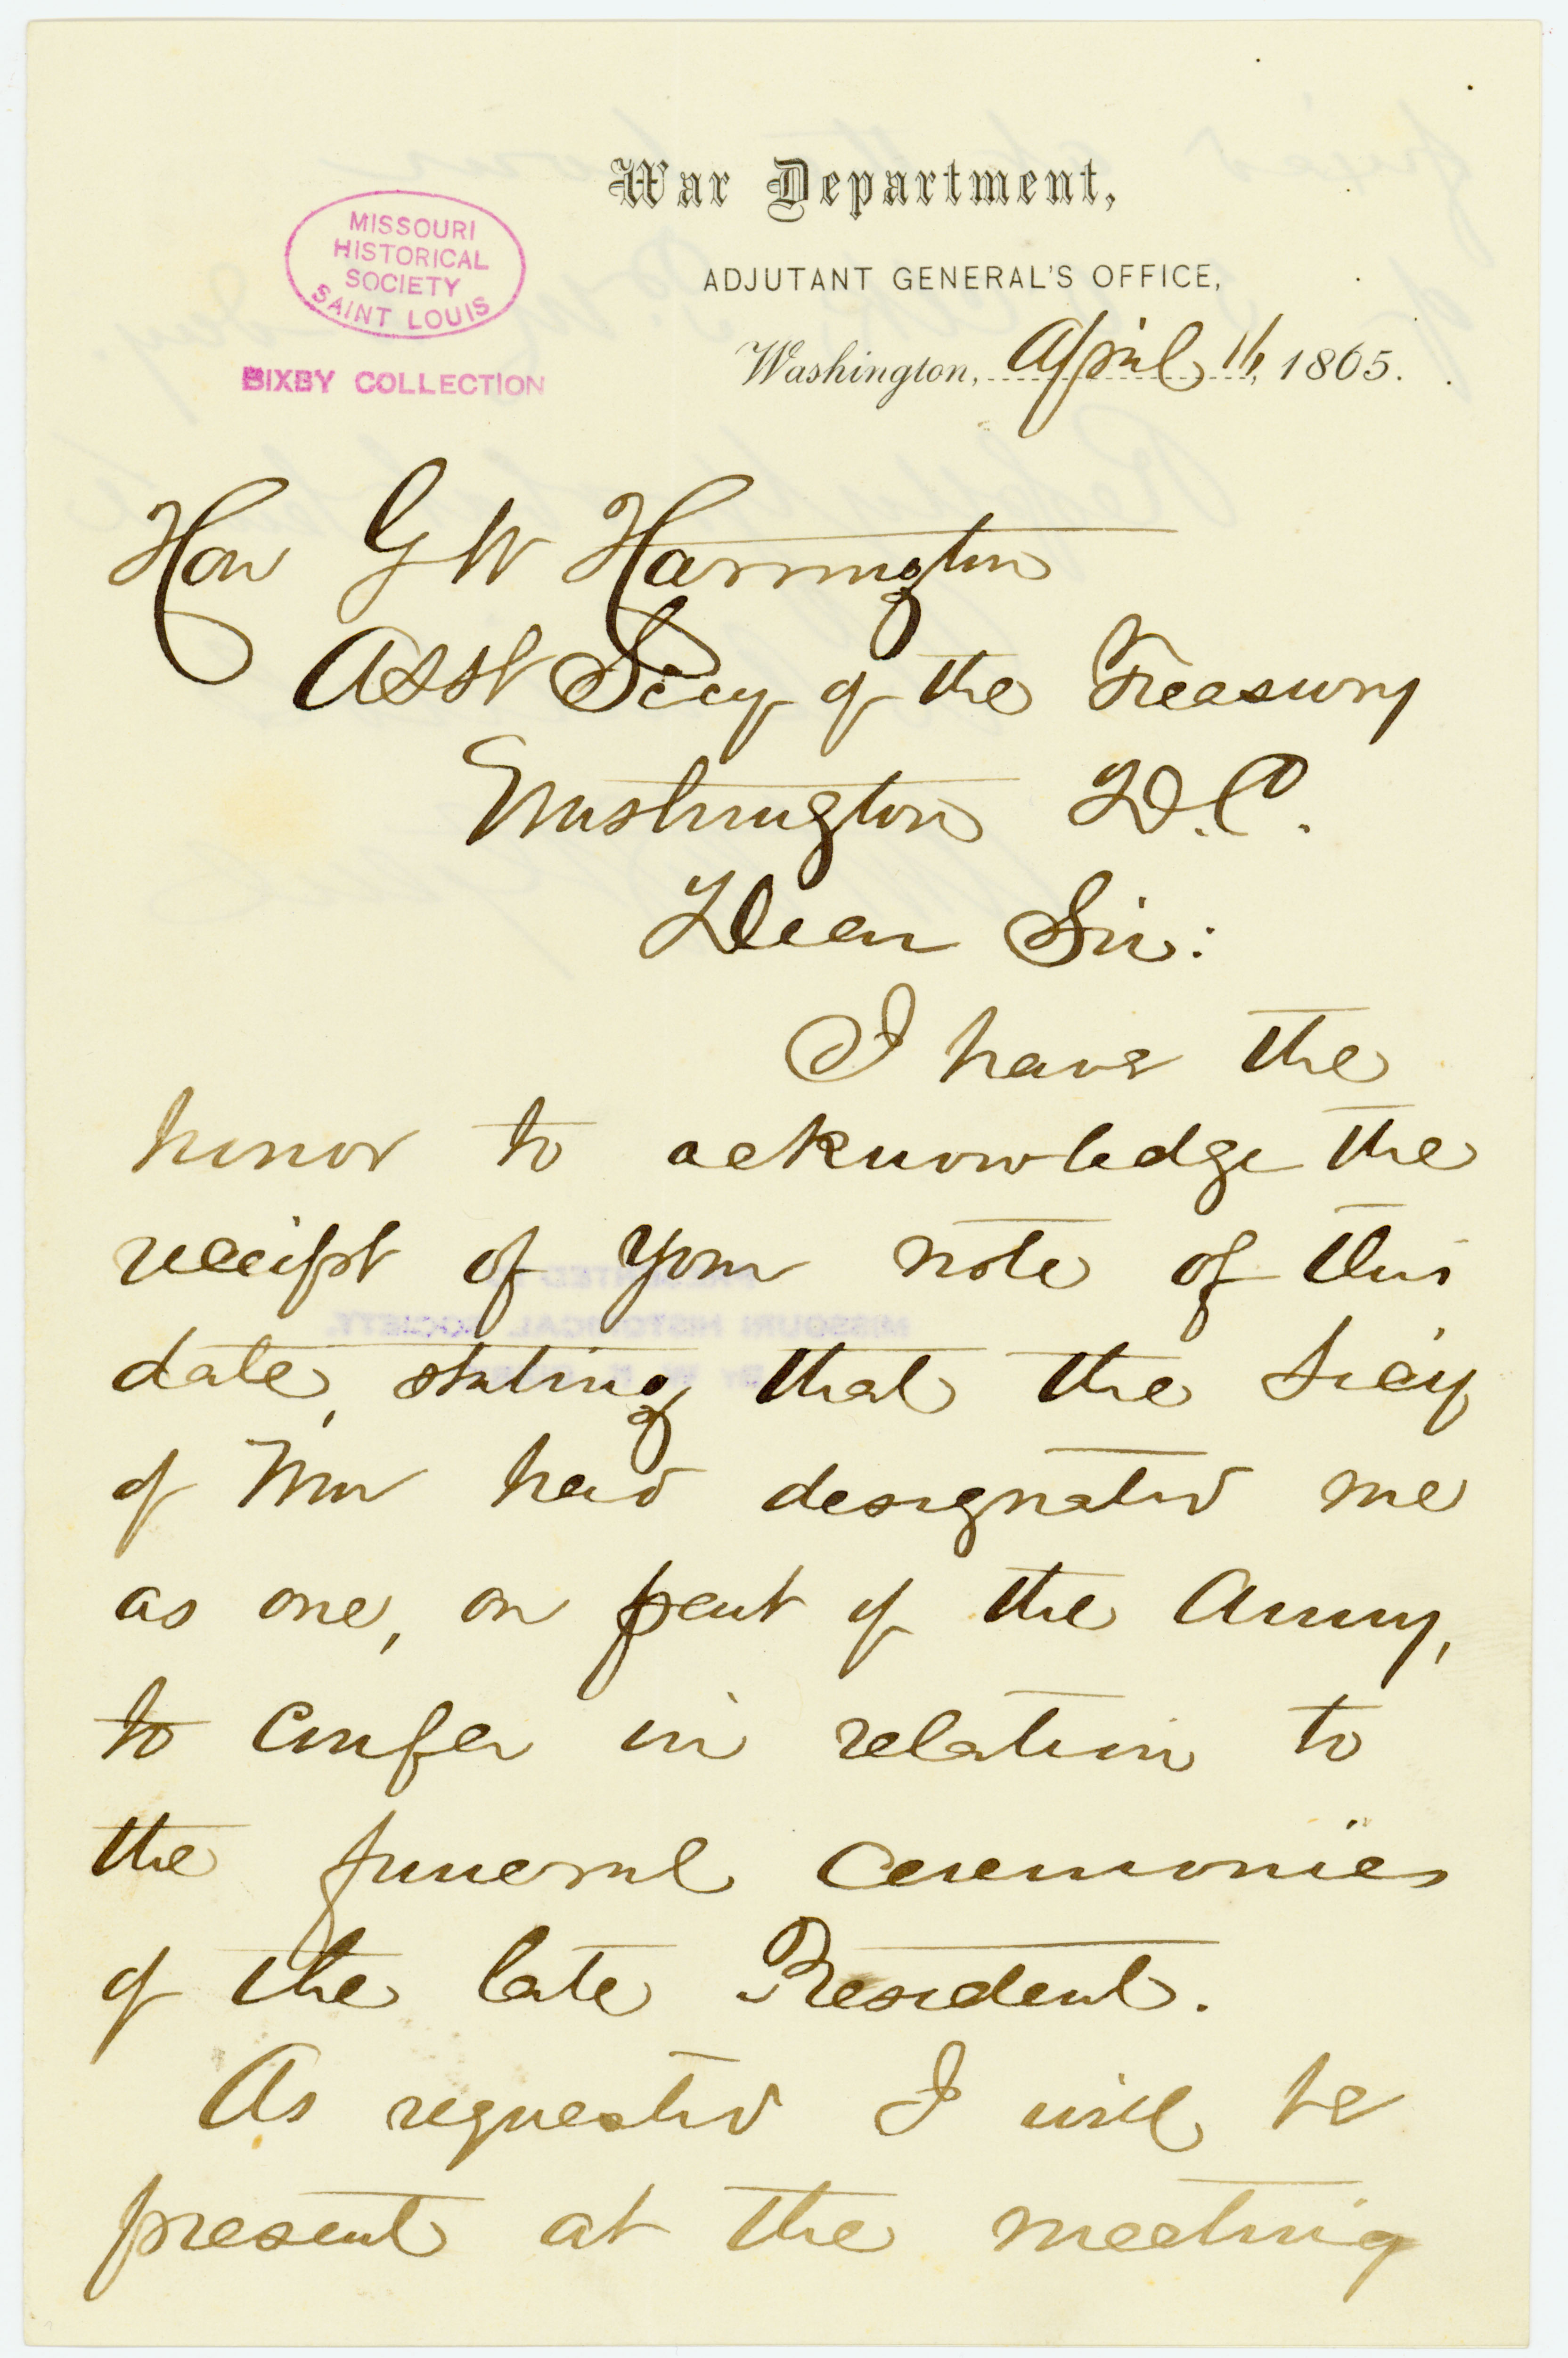 Letter signed W.A. Nichols, War Department, Adjutant General's Office, Washington, to Hon. G.W. Harrington, Asst. Secy. of the Treasury, Washington, D.C., April 16, 1865